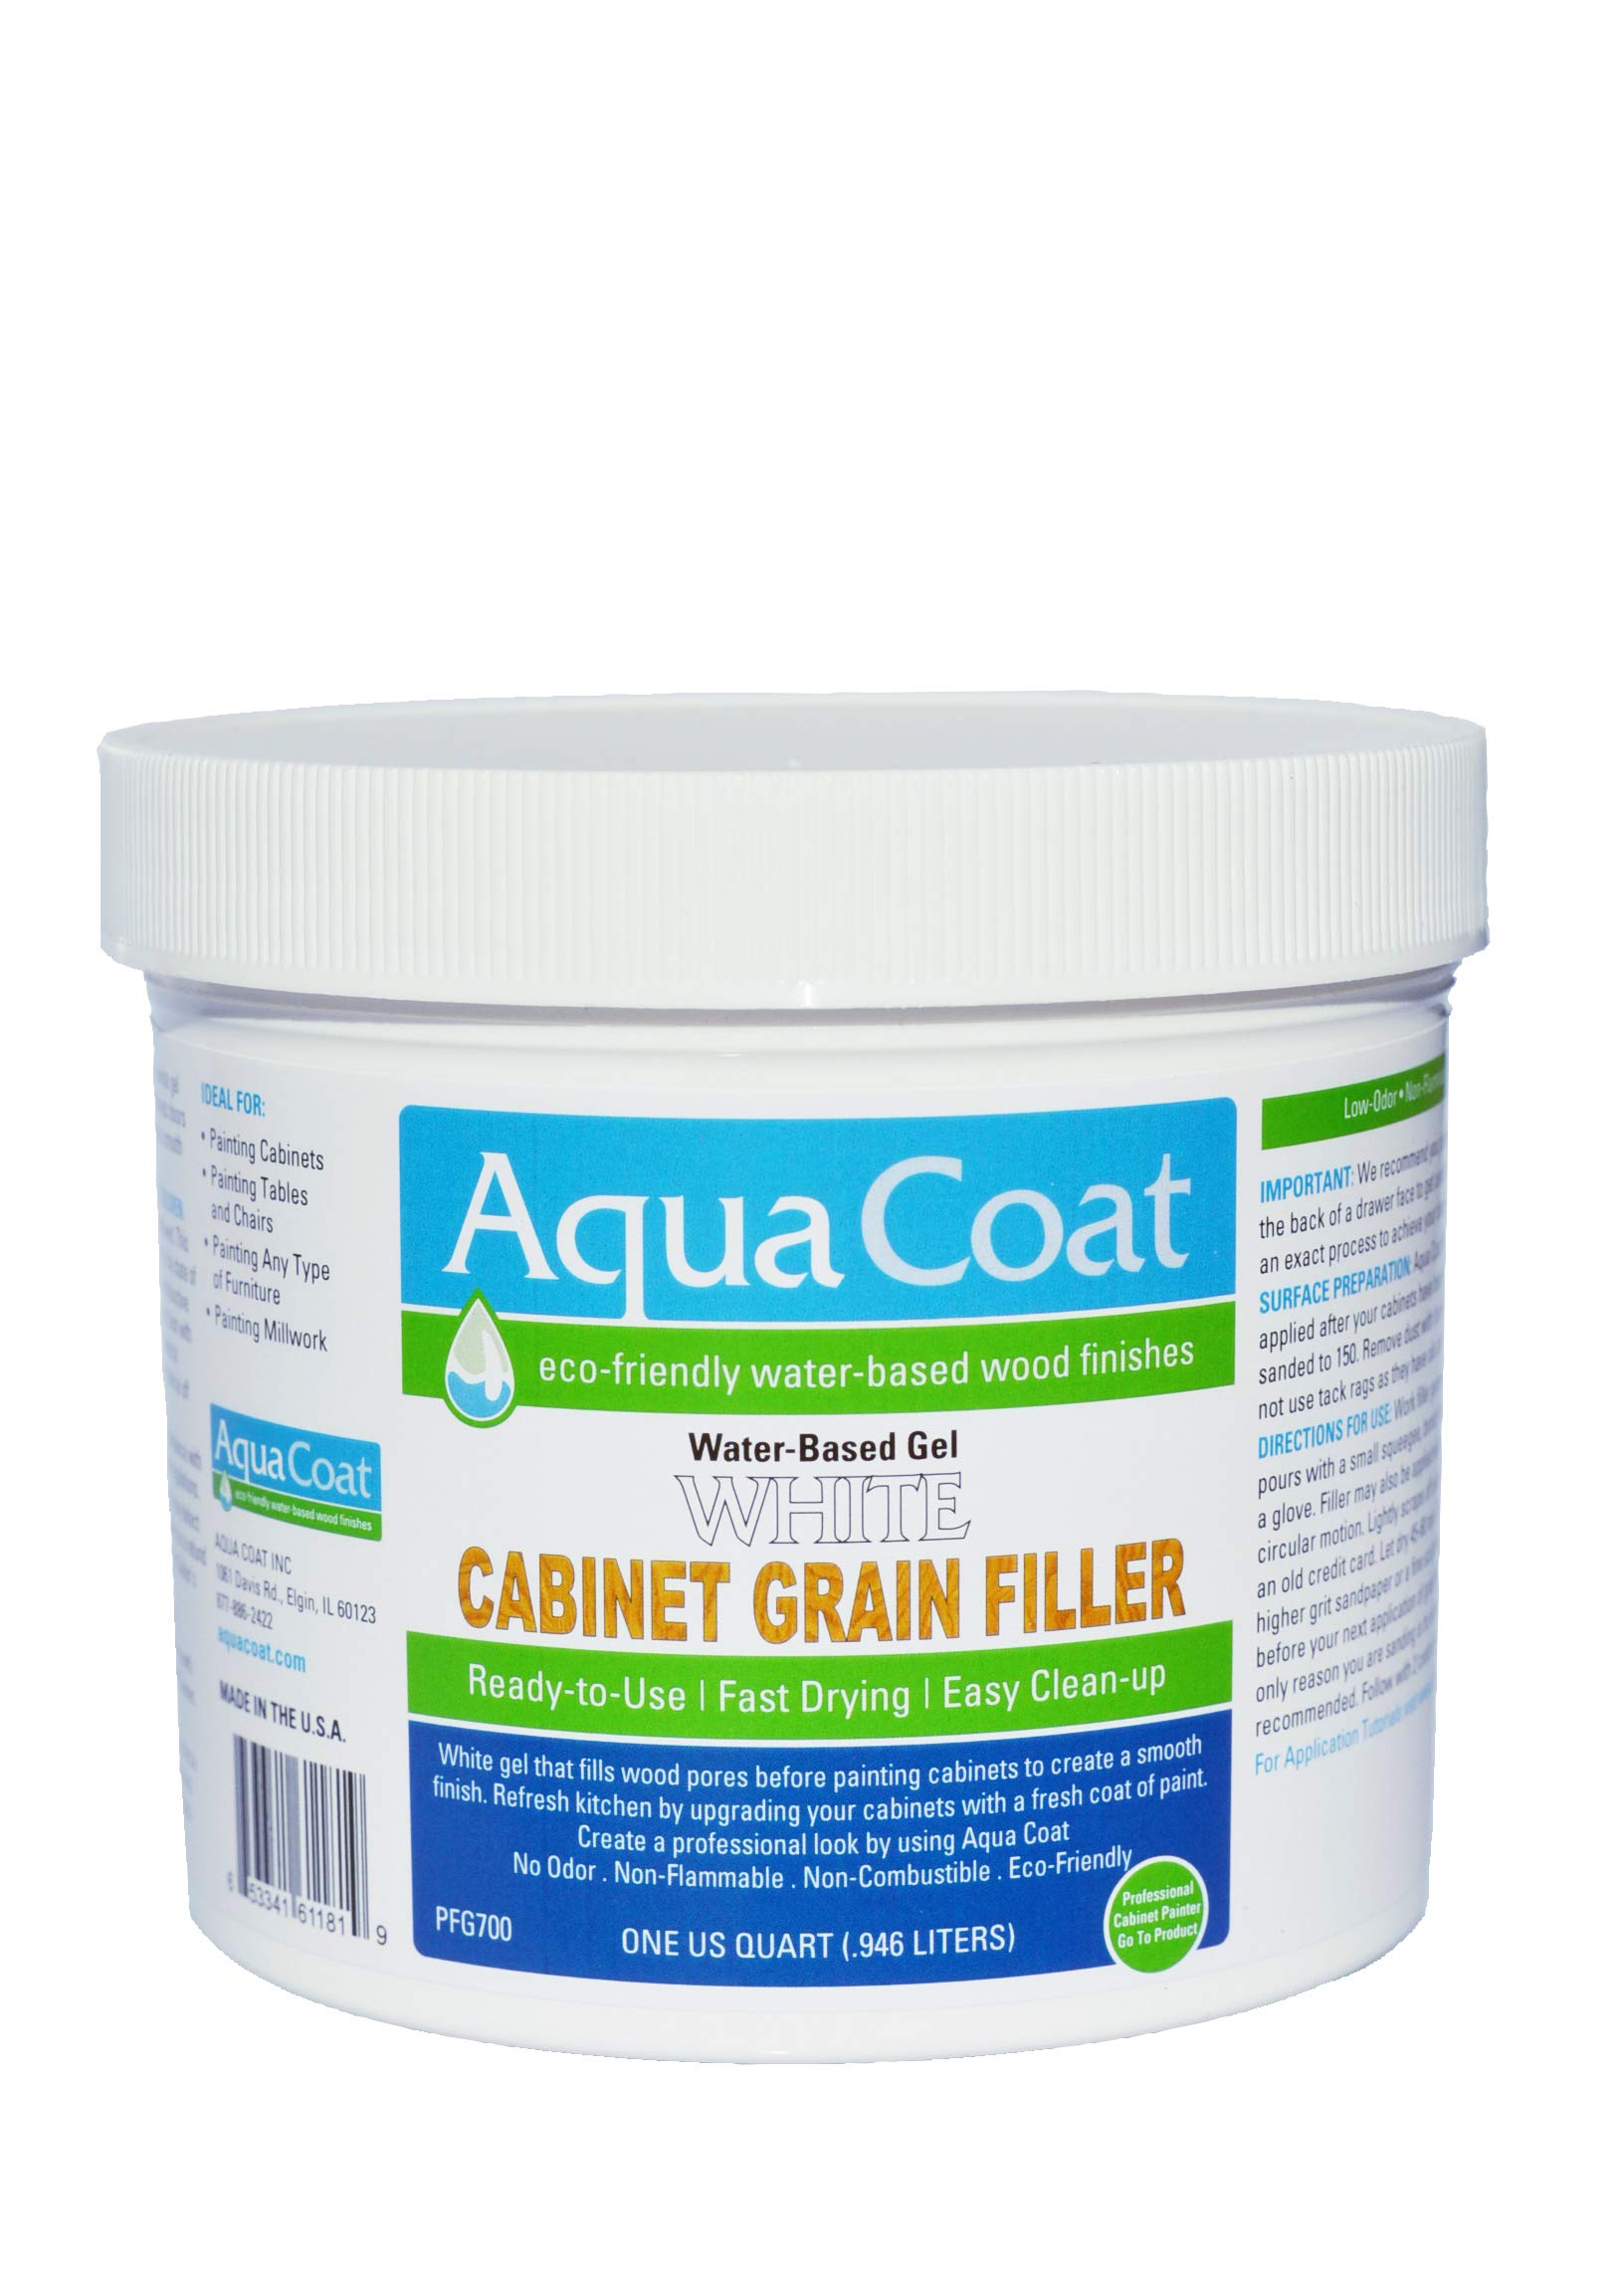 Aqua Coat,Best White Cabinet Wood Grain Filler, White Gel, Water Based, Low Odor, Fast Drying, Non Toxic, Environmentally Safe. Quart. by Aqua Coat Inc. (Image #1)